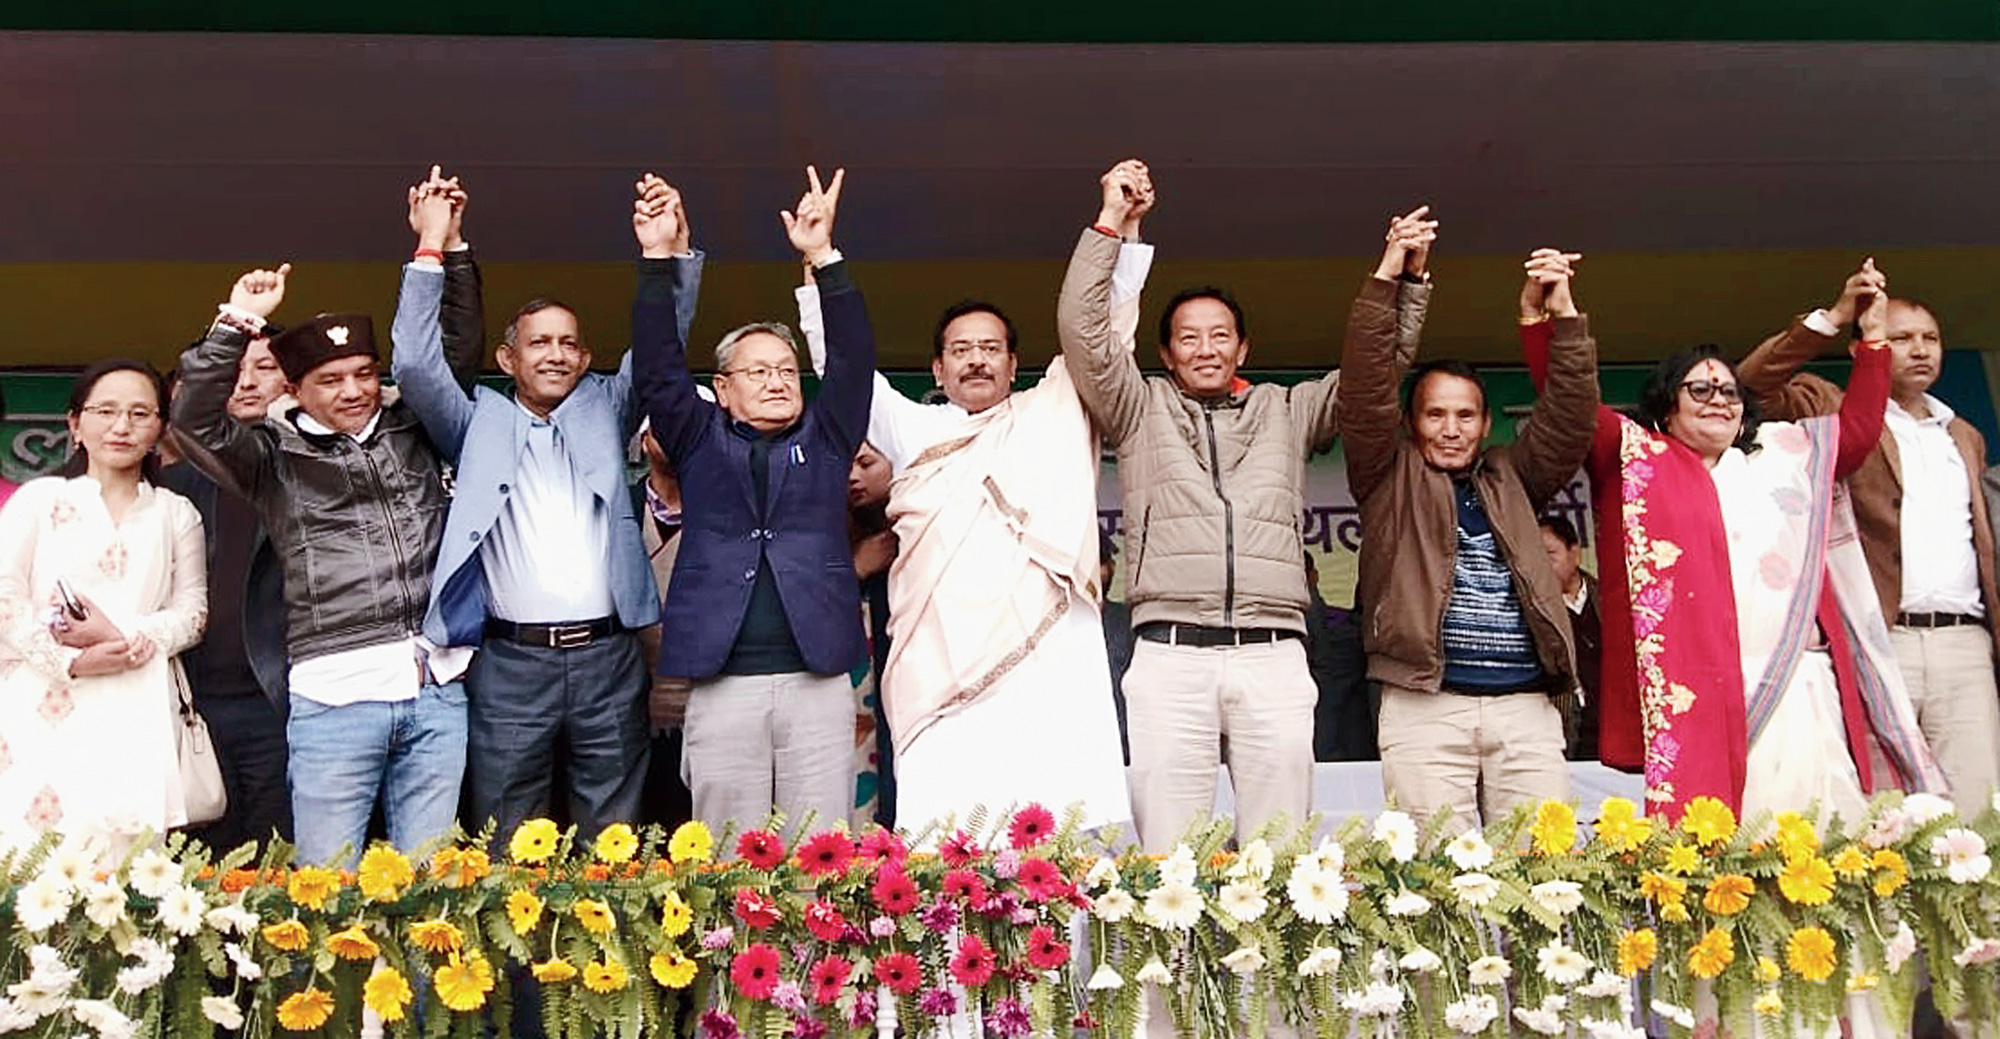 Darjeeling candidate Amar Singh Rai and Morcha and Trinamul leaders at the public meeting in Lebong on Tuesday.